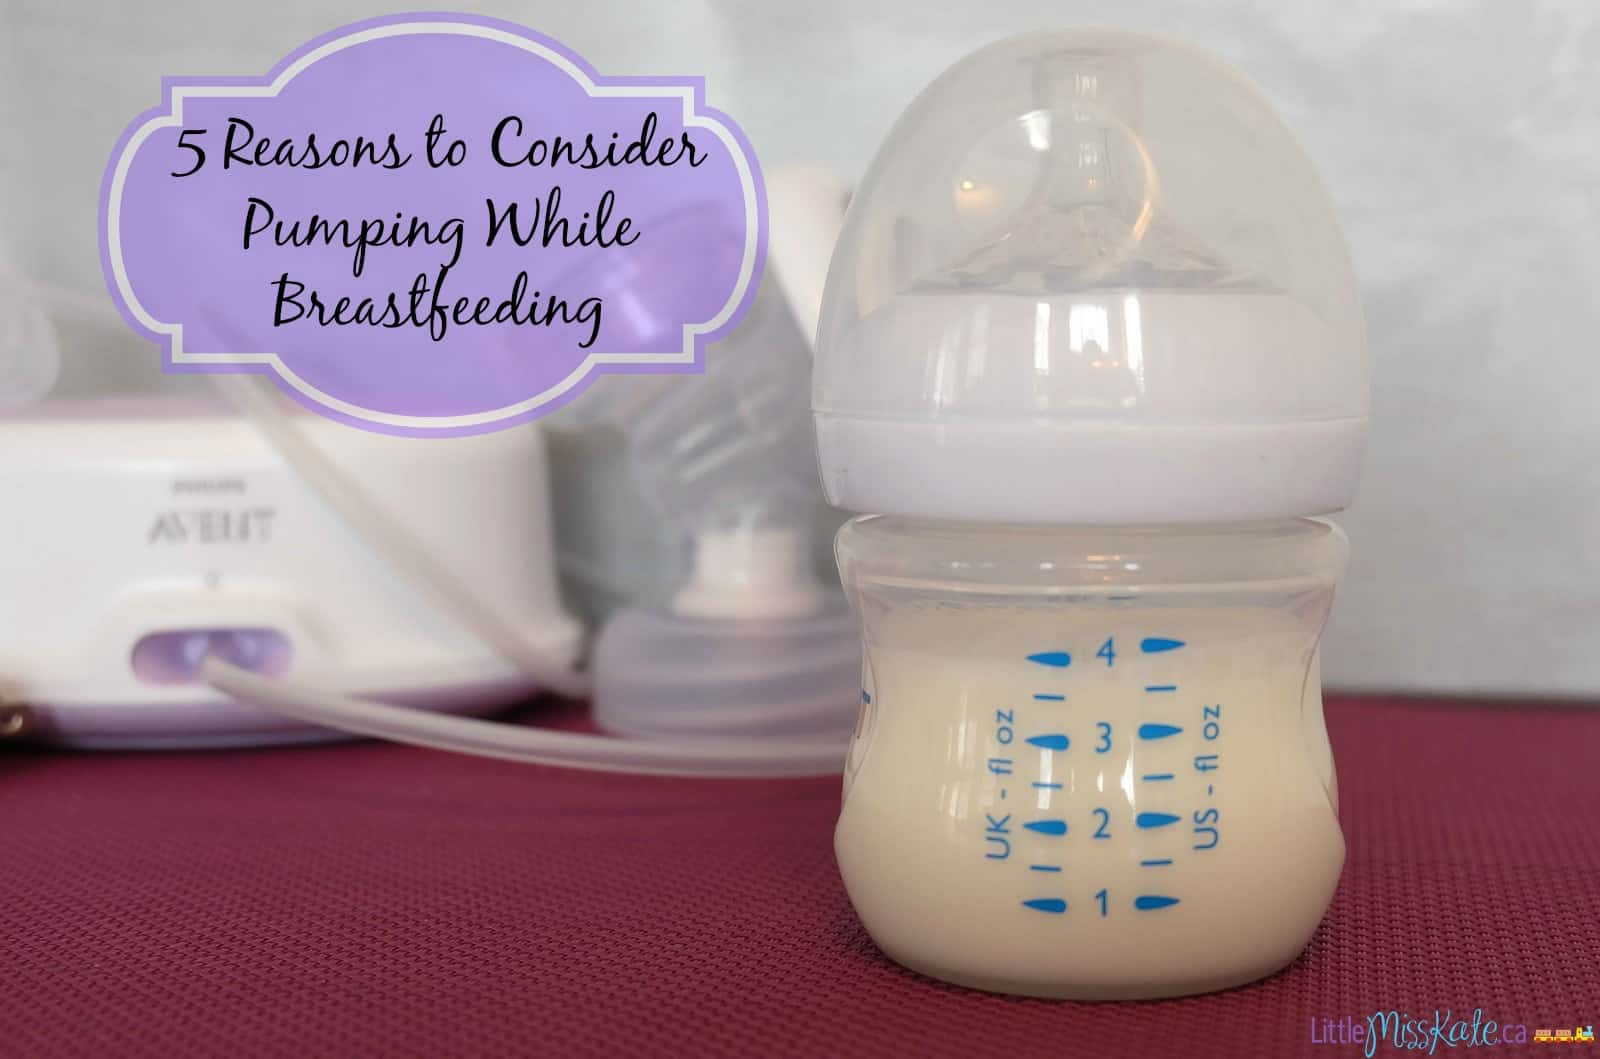 5 Reasons to Consider Pumping While Breastfeeding